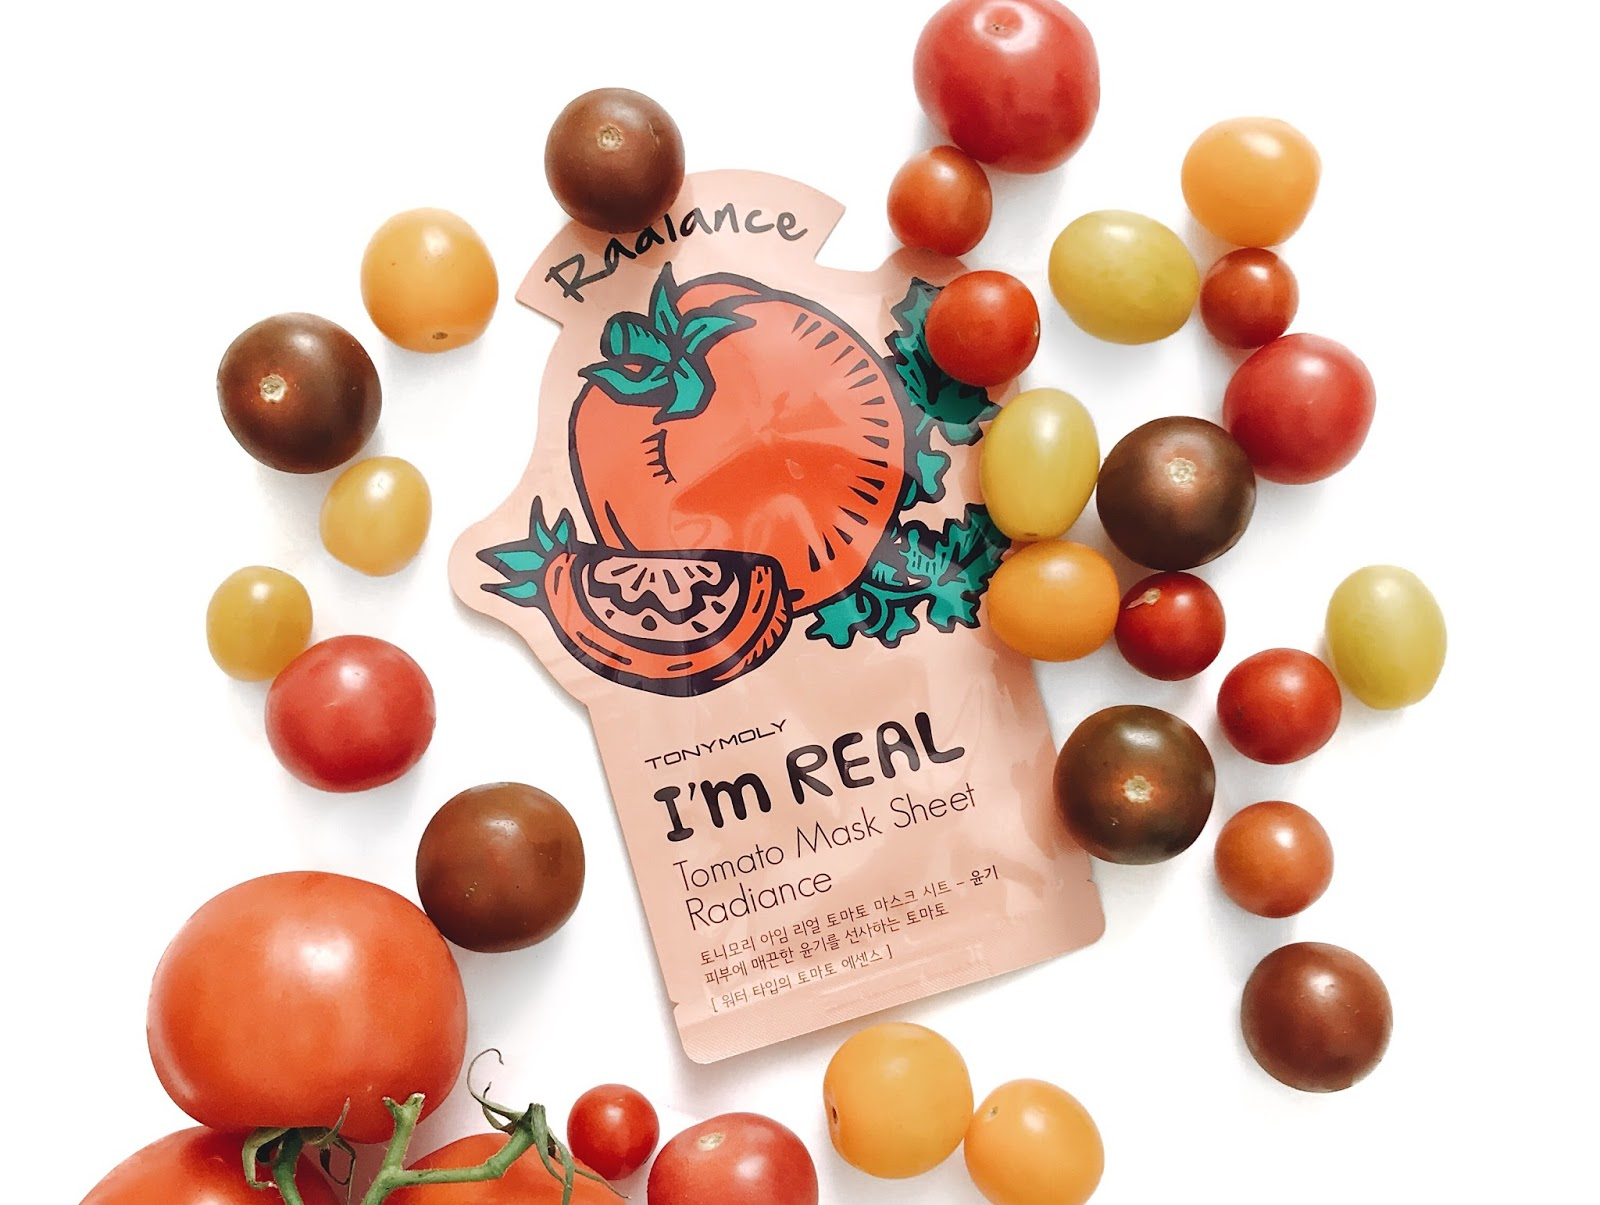 Tony Moly It's Real Tomato Radiance Sheet Mask reviewed by The Jen Project